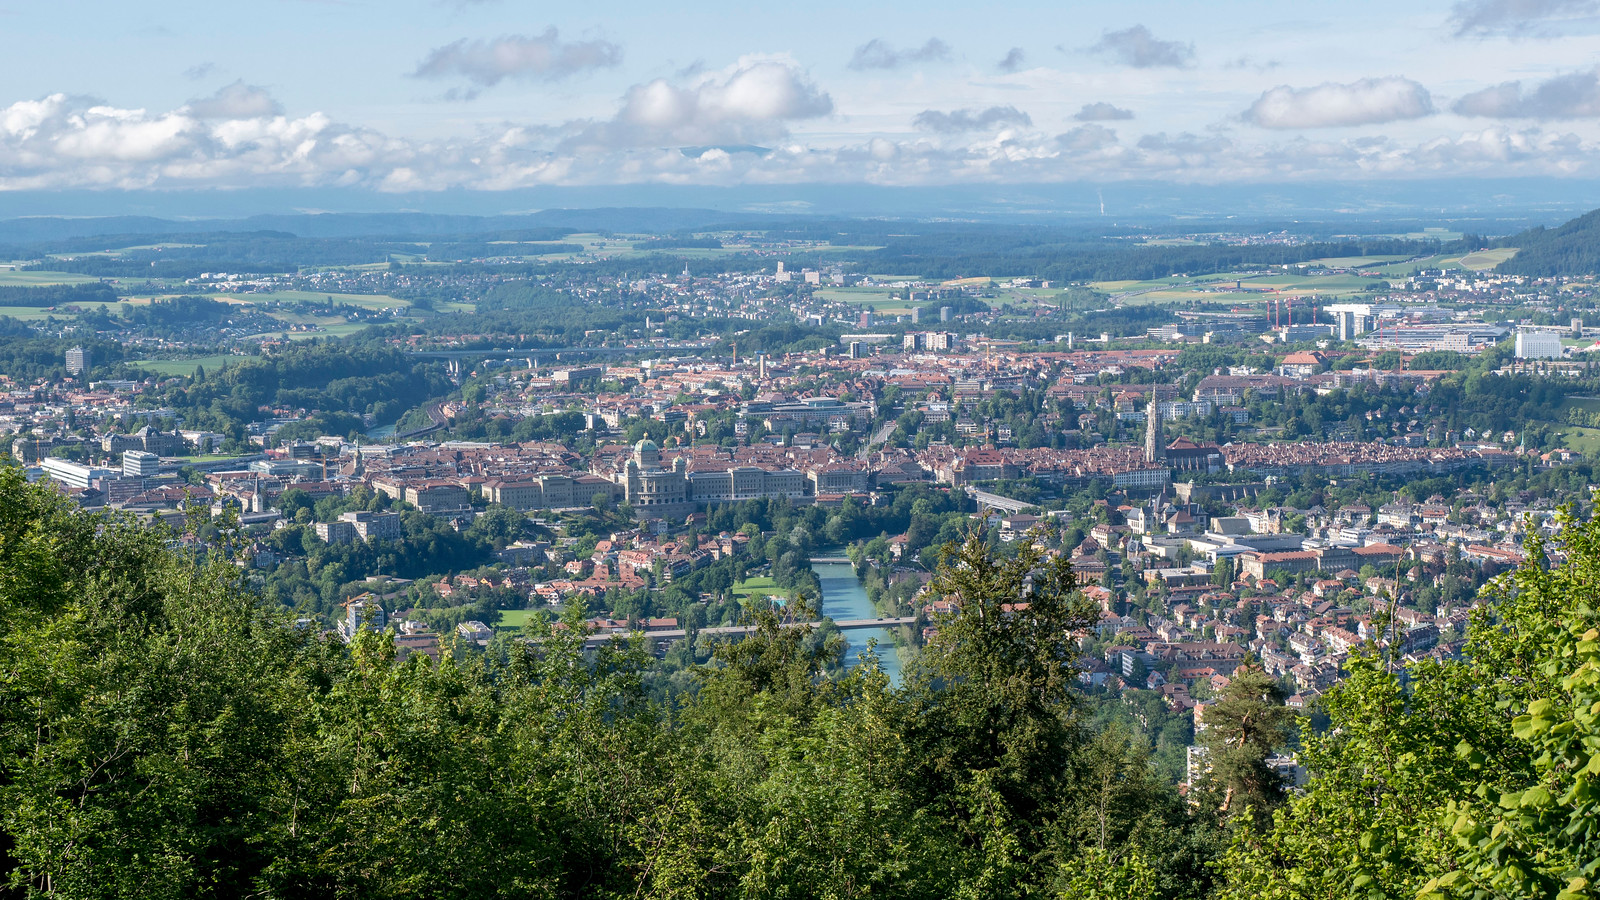 5 Spectacular Things to Do in Bern Switzerland - The Gurten - Views of Bern